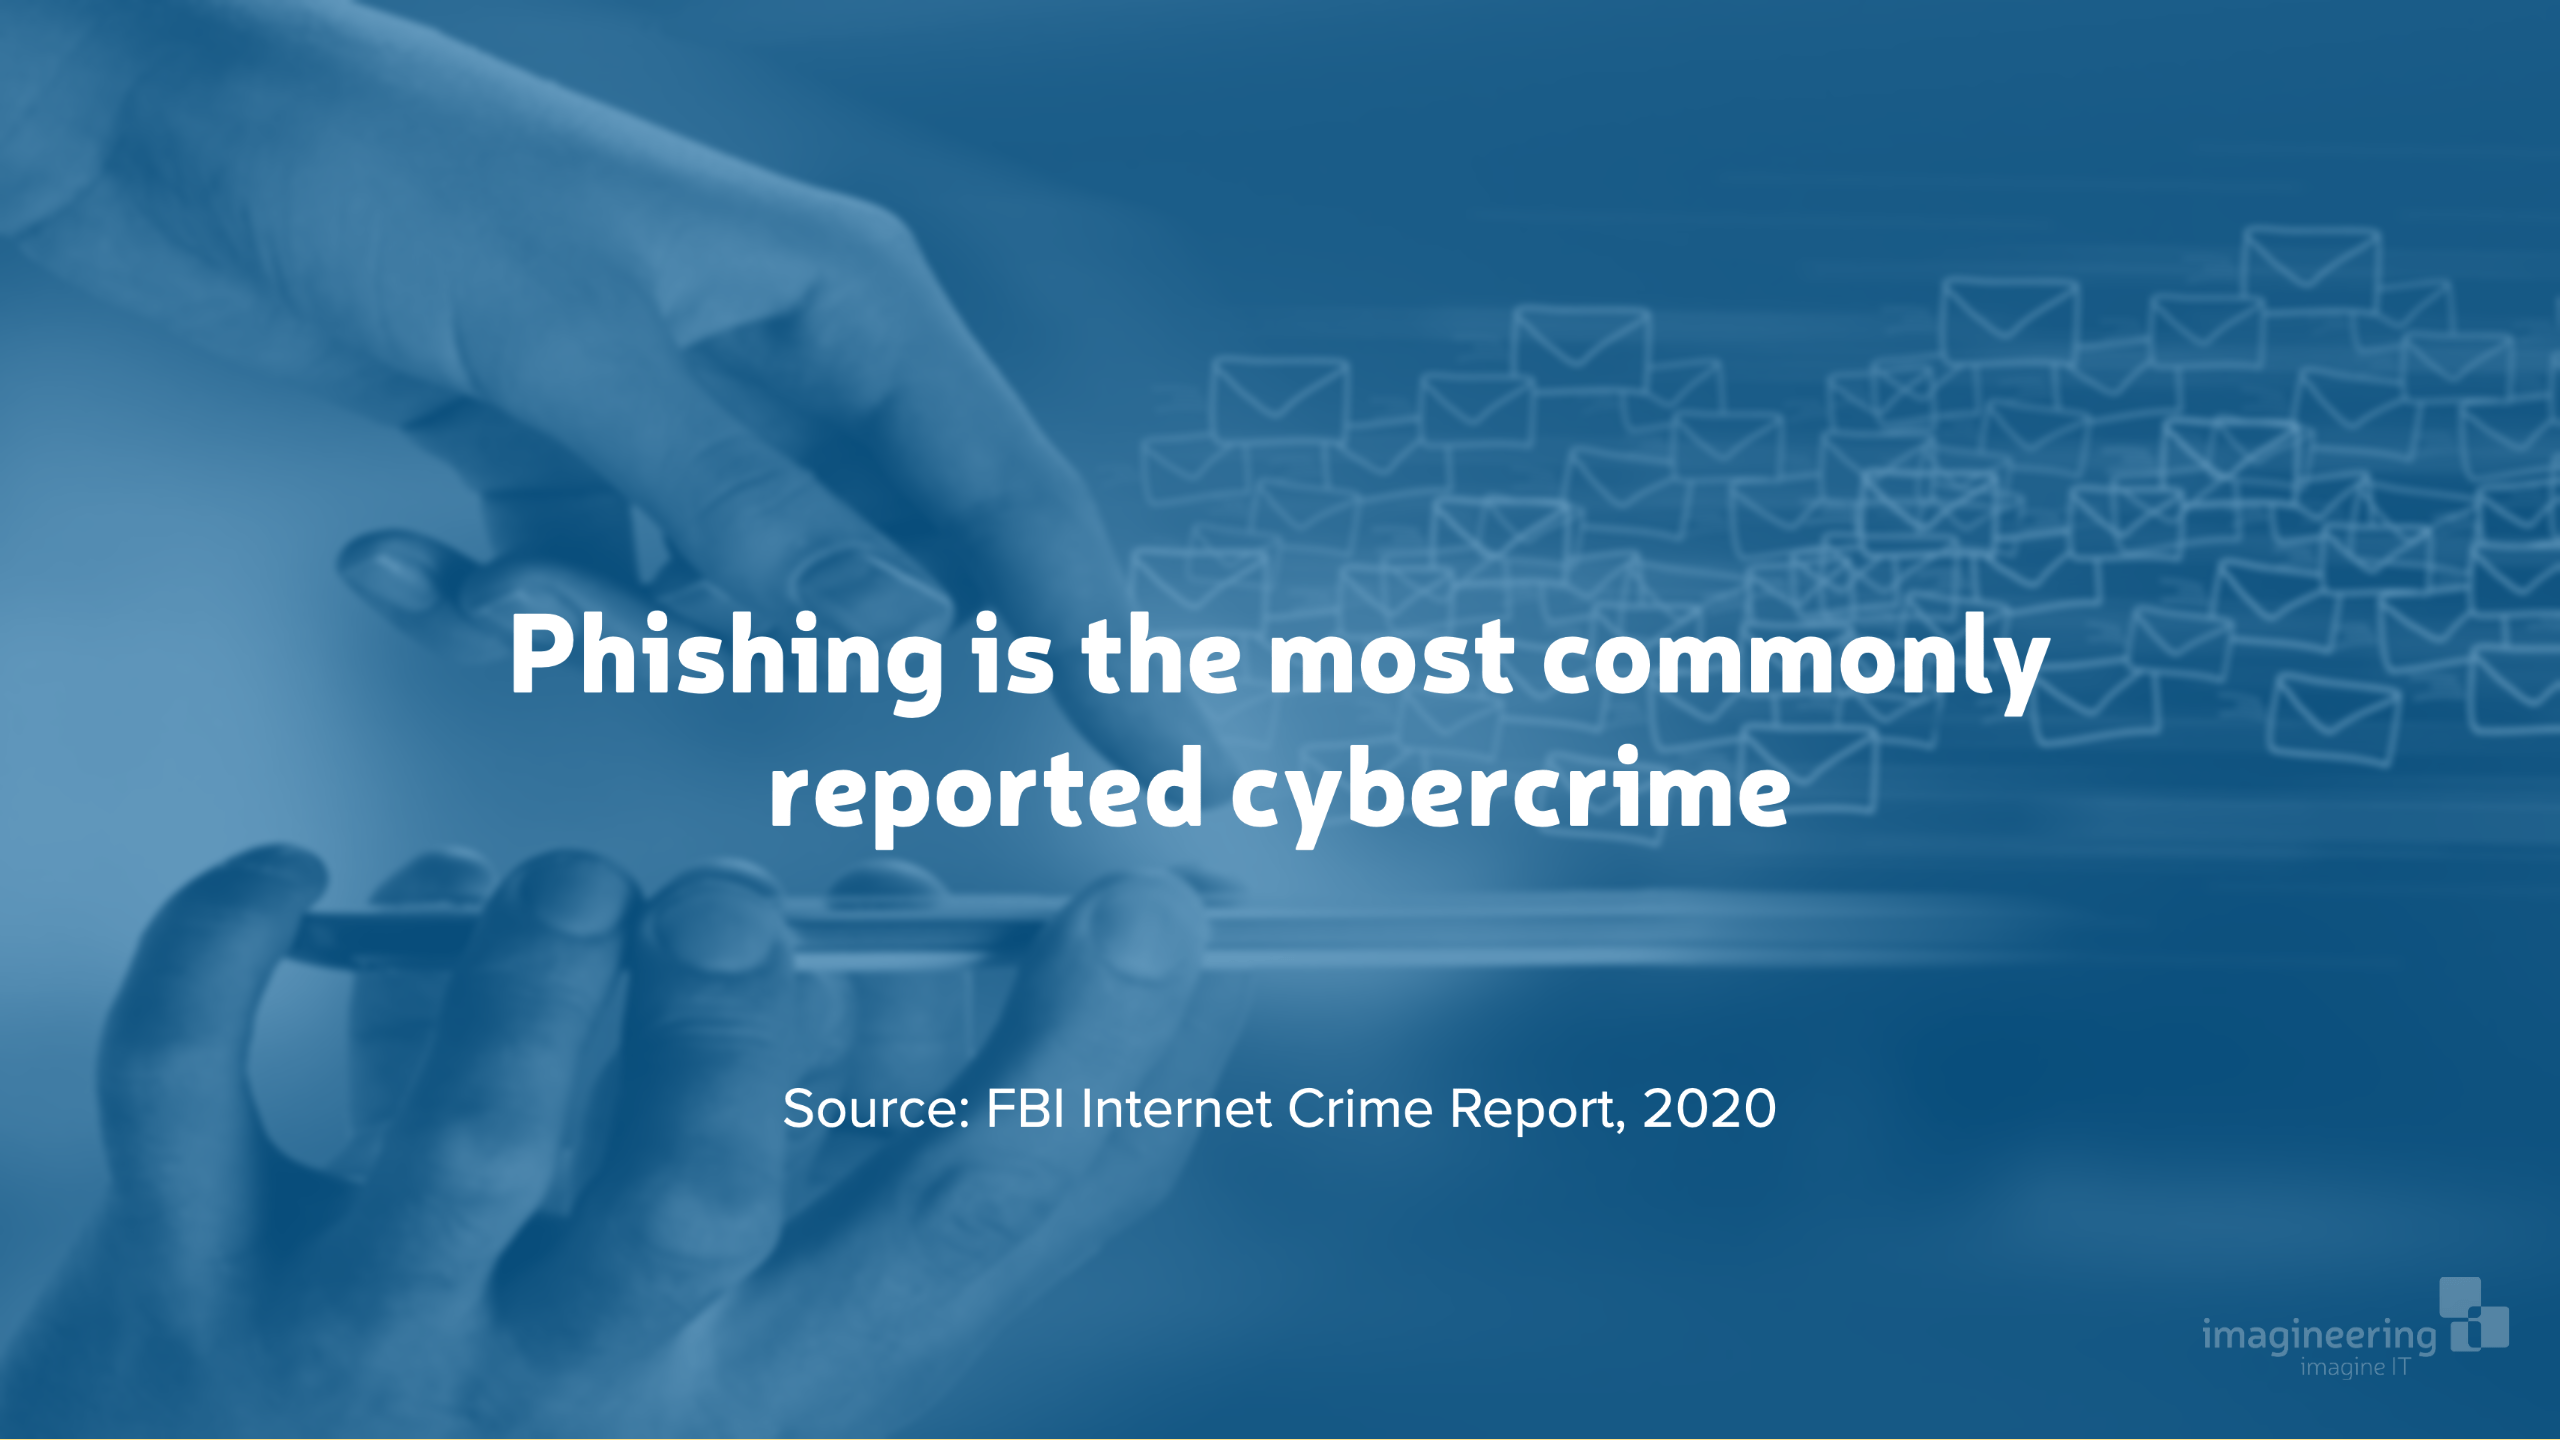 Phishing is the most commonly reported cybercrime